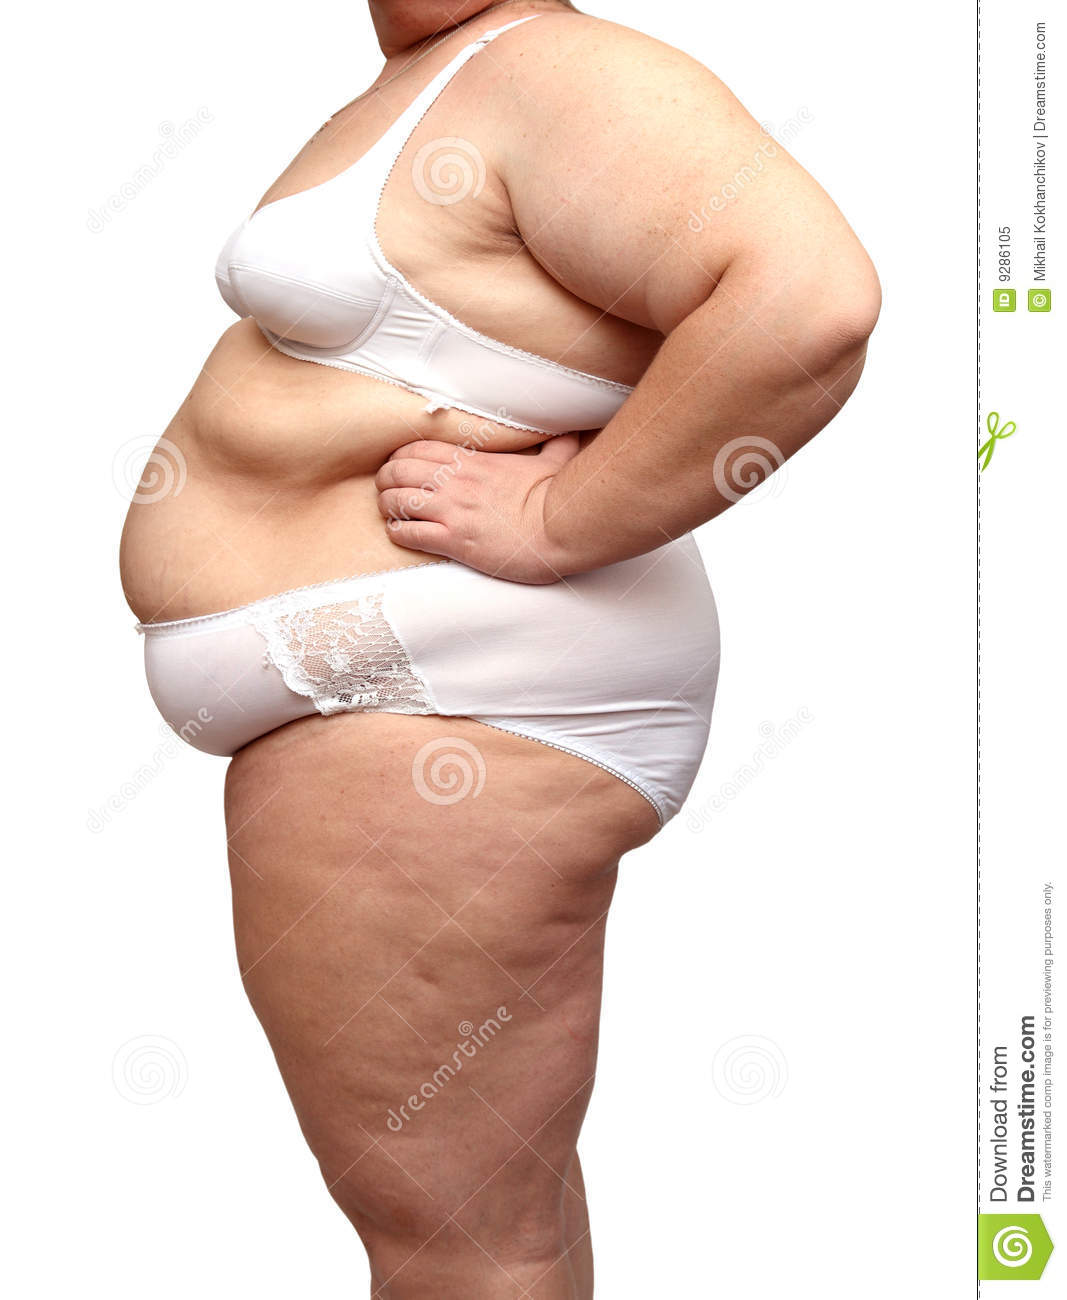 Lingerie for obese women